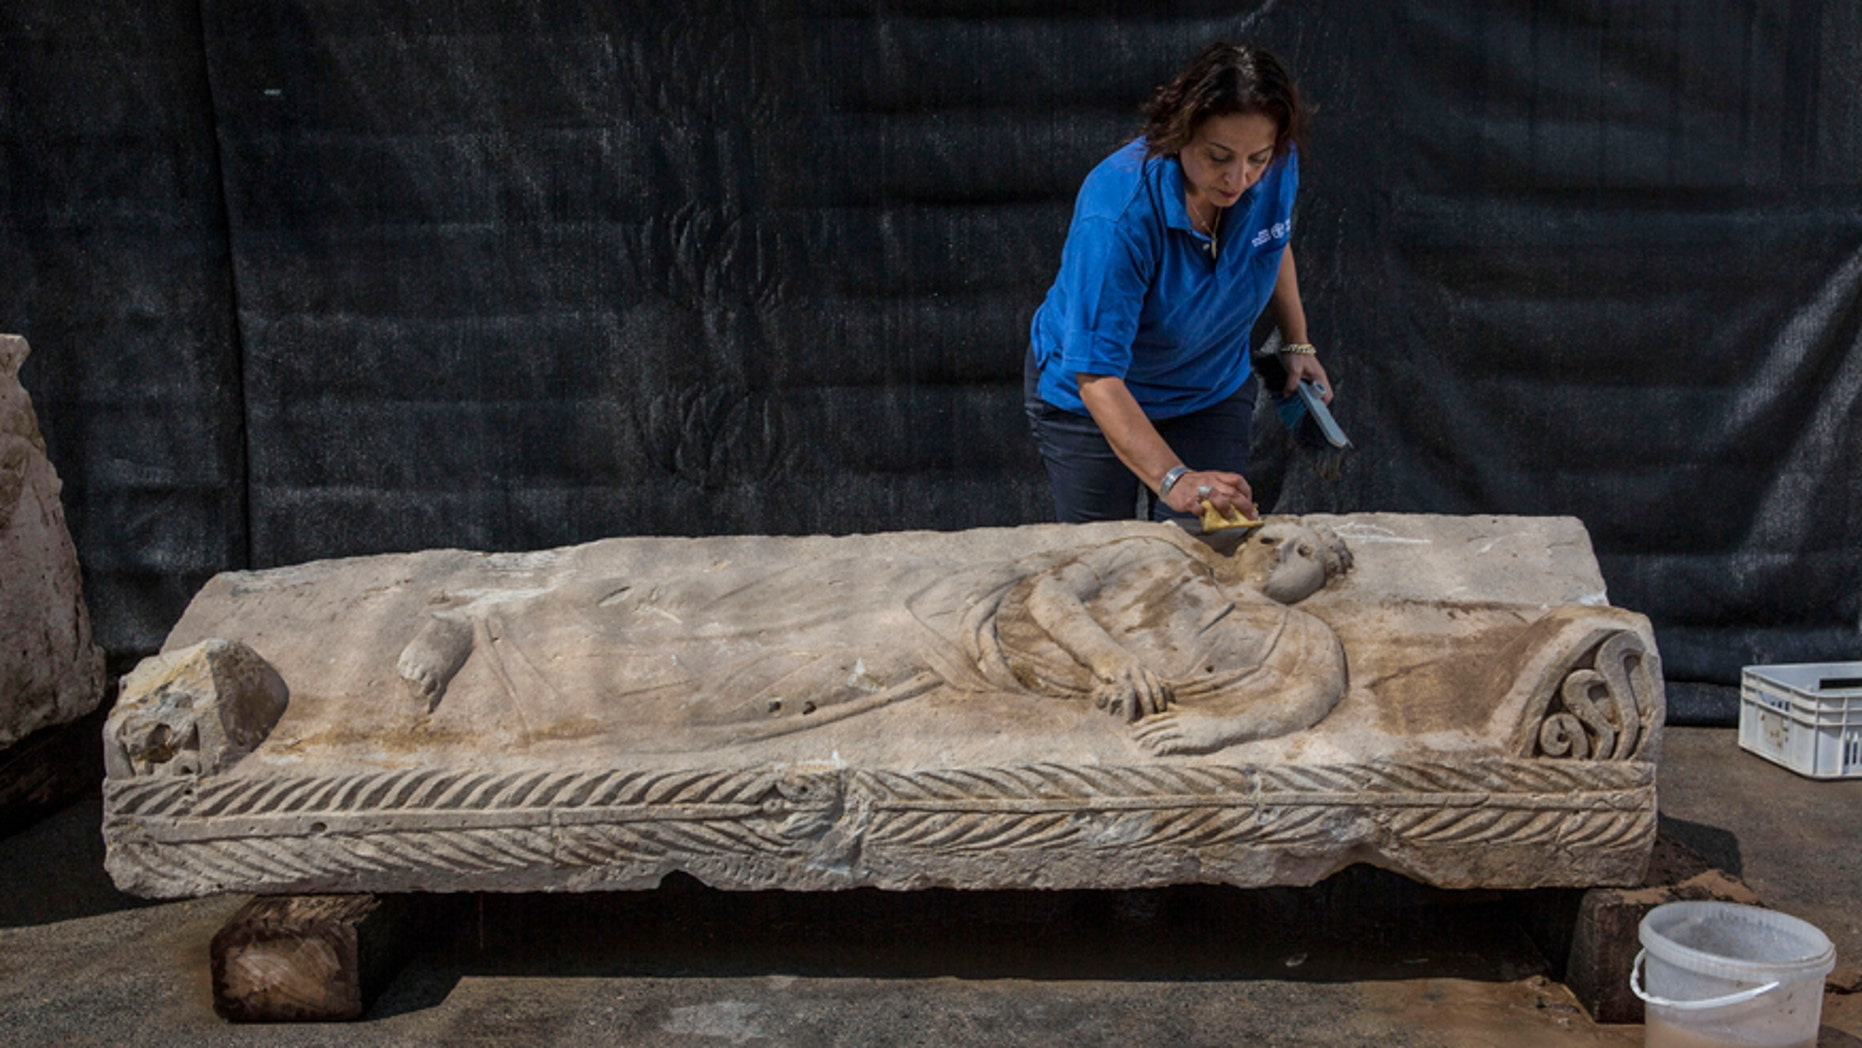 An Israeli Antiquities Authority employee cleans an 1,800 years old stone sarcophagus.